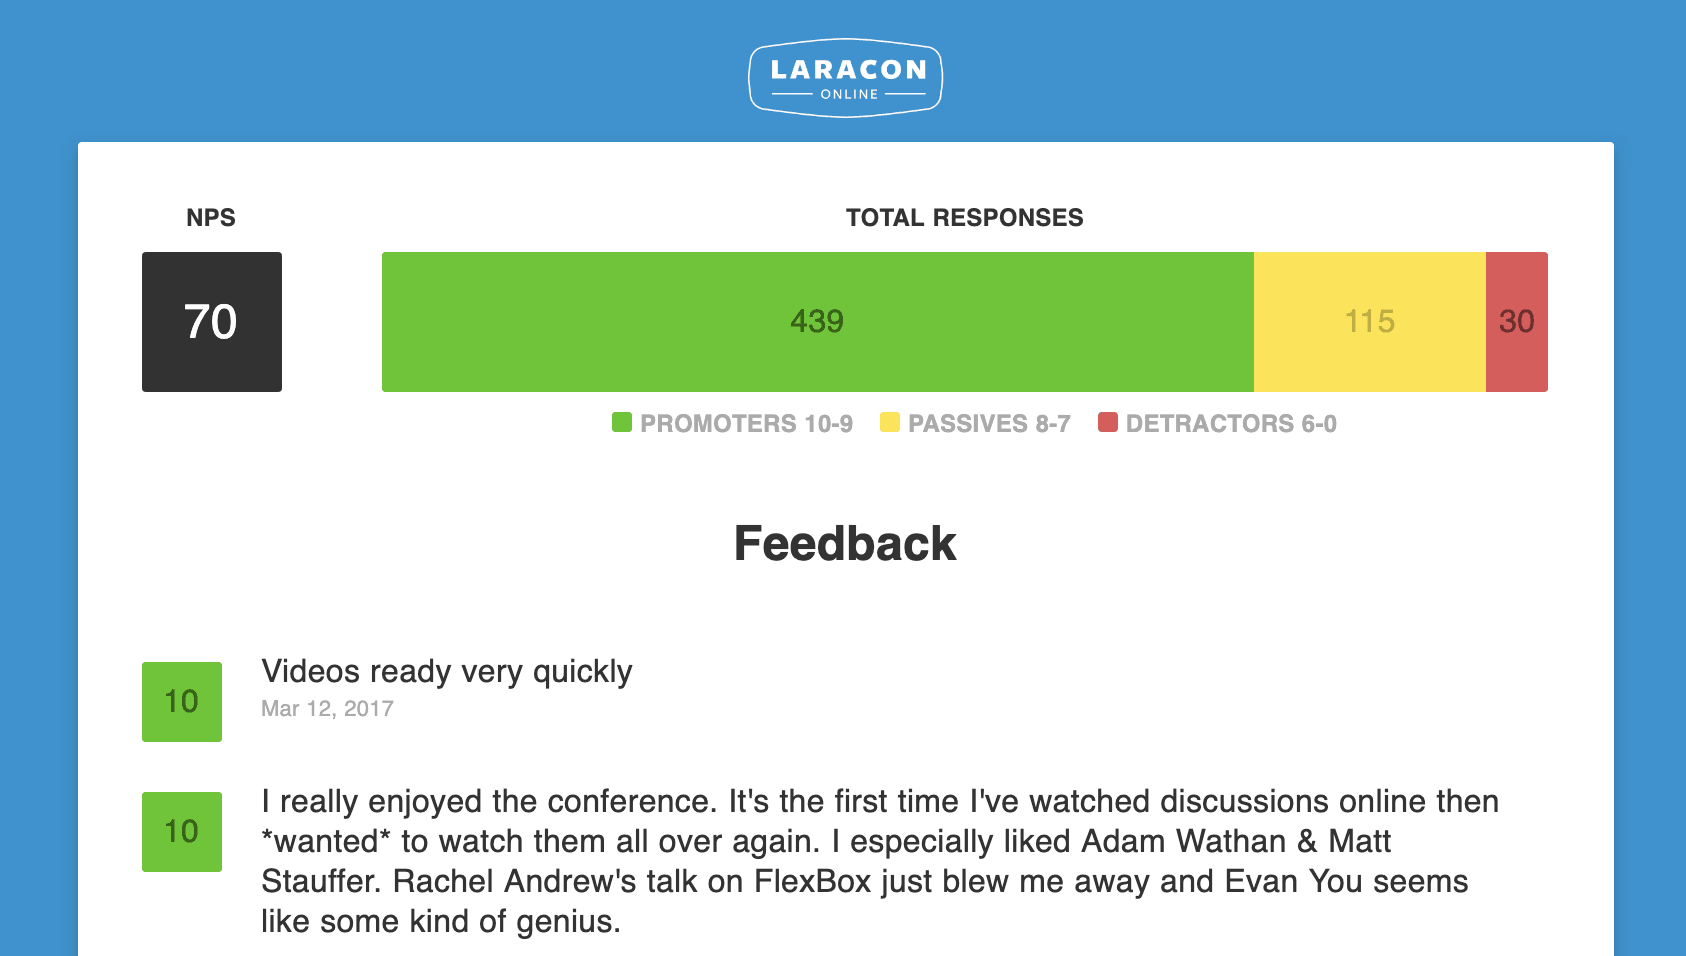 Laracon Online results shared publicly